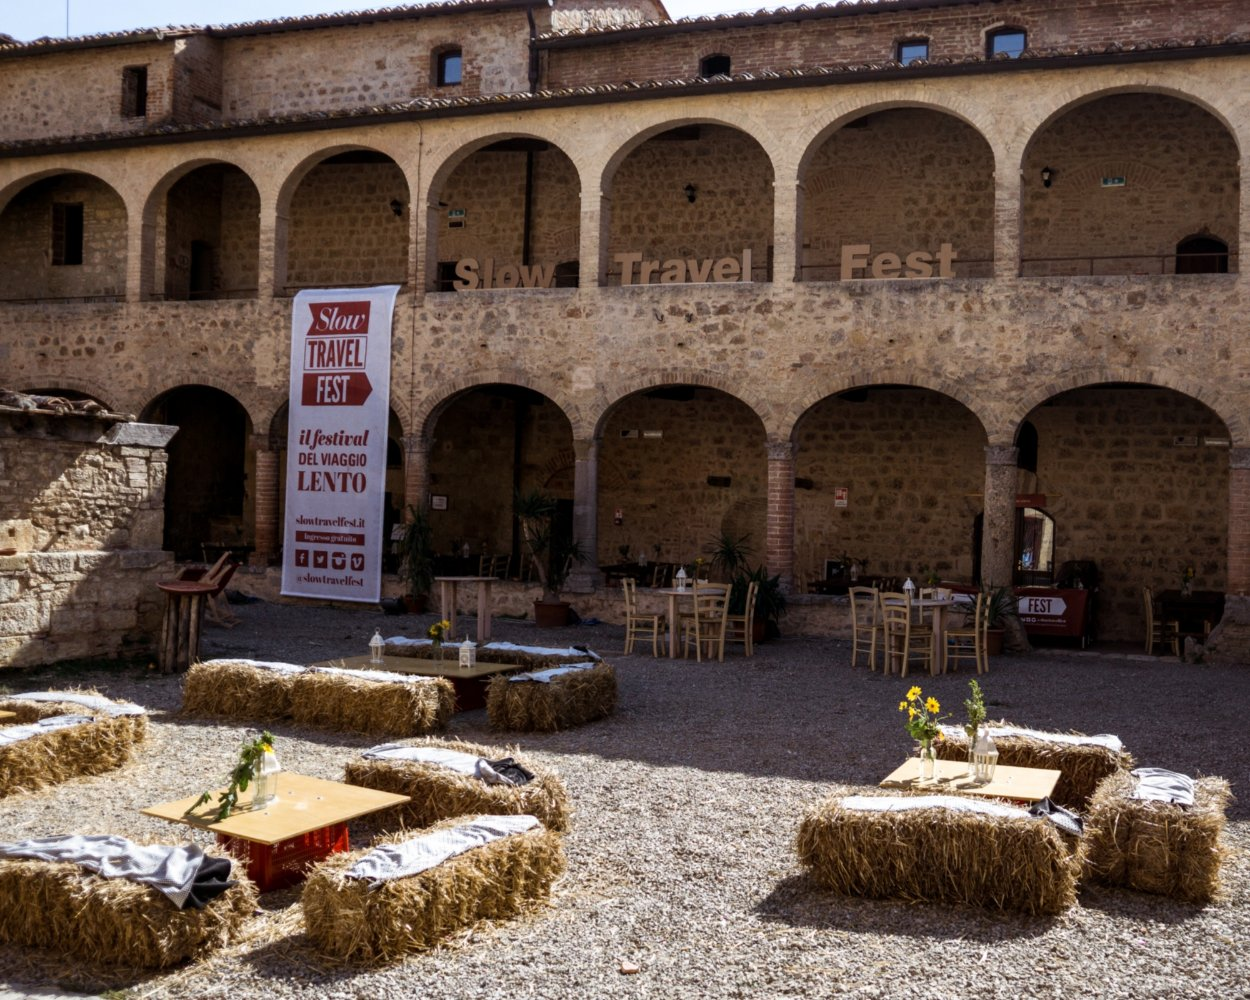 Slow Travel Fest, Abbadia a Isola